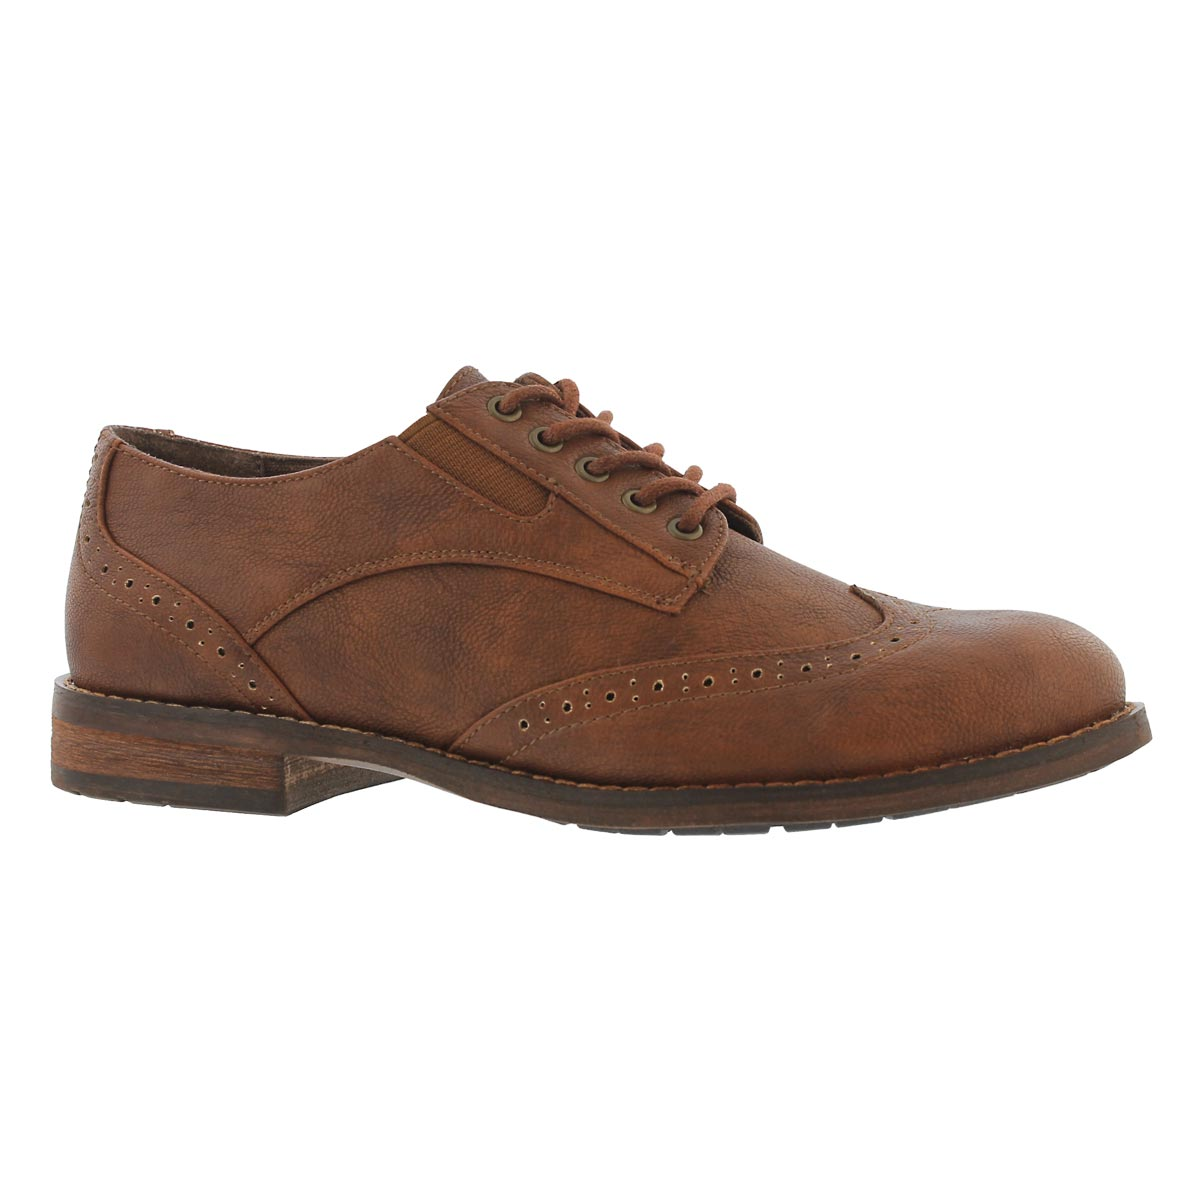 Women's TALIA tan lace up oxfords